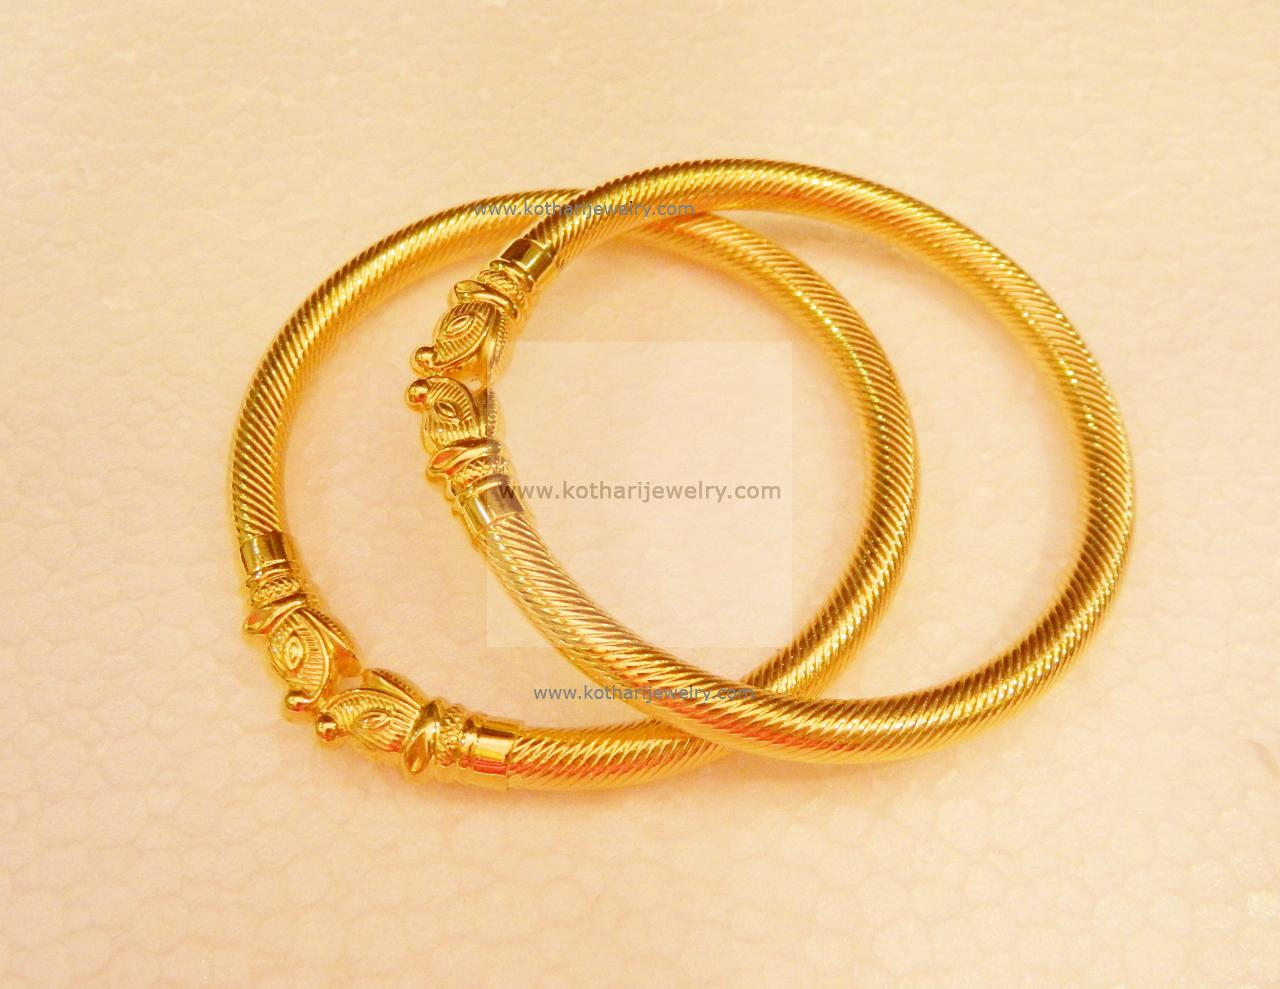 bangle lovely com jacknjewel bracelet gold plain bangles yellow